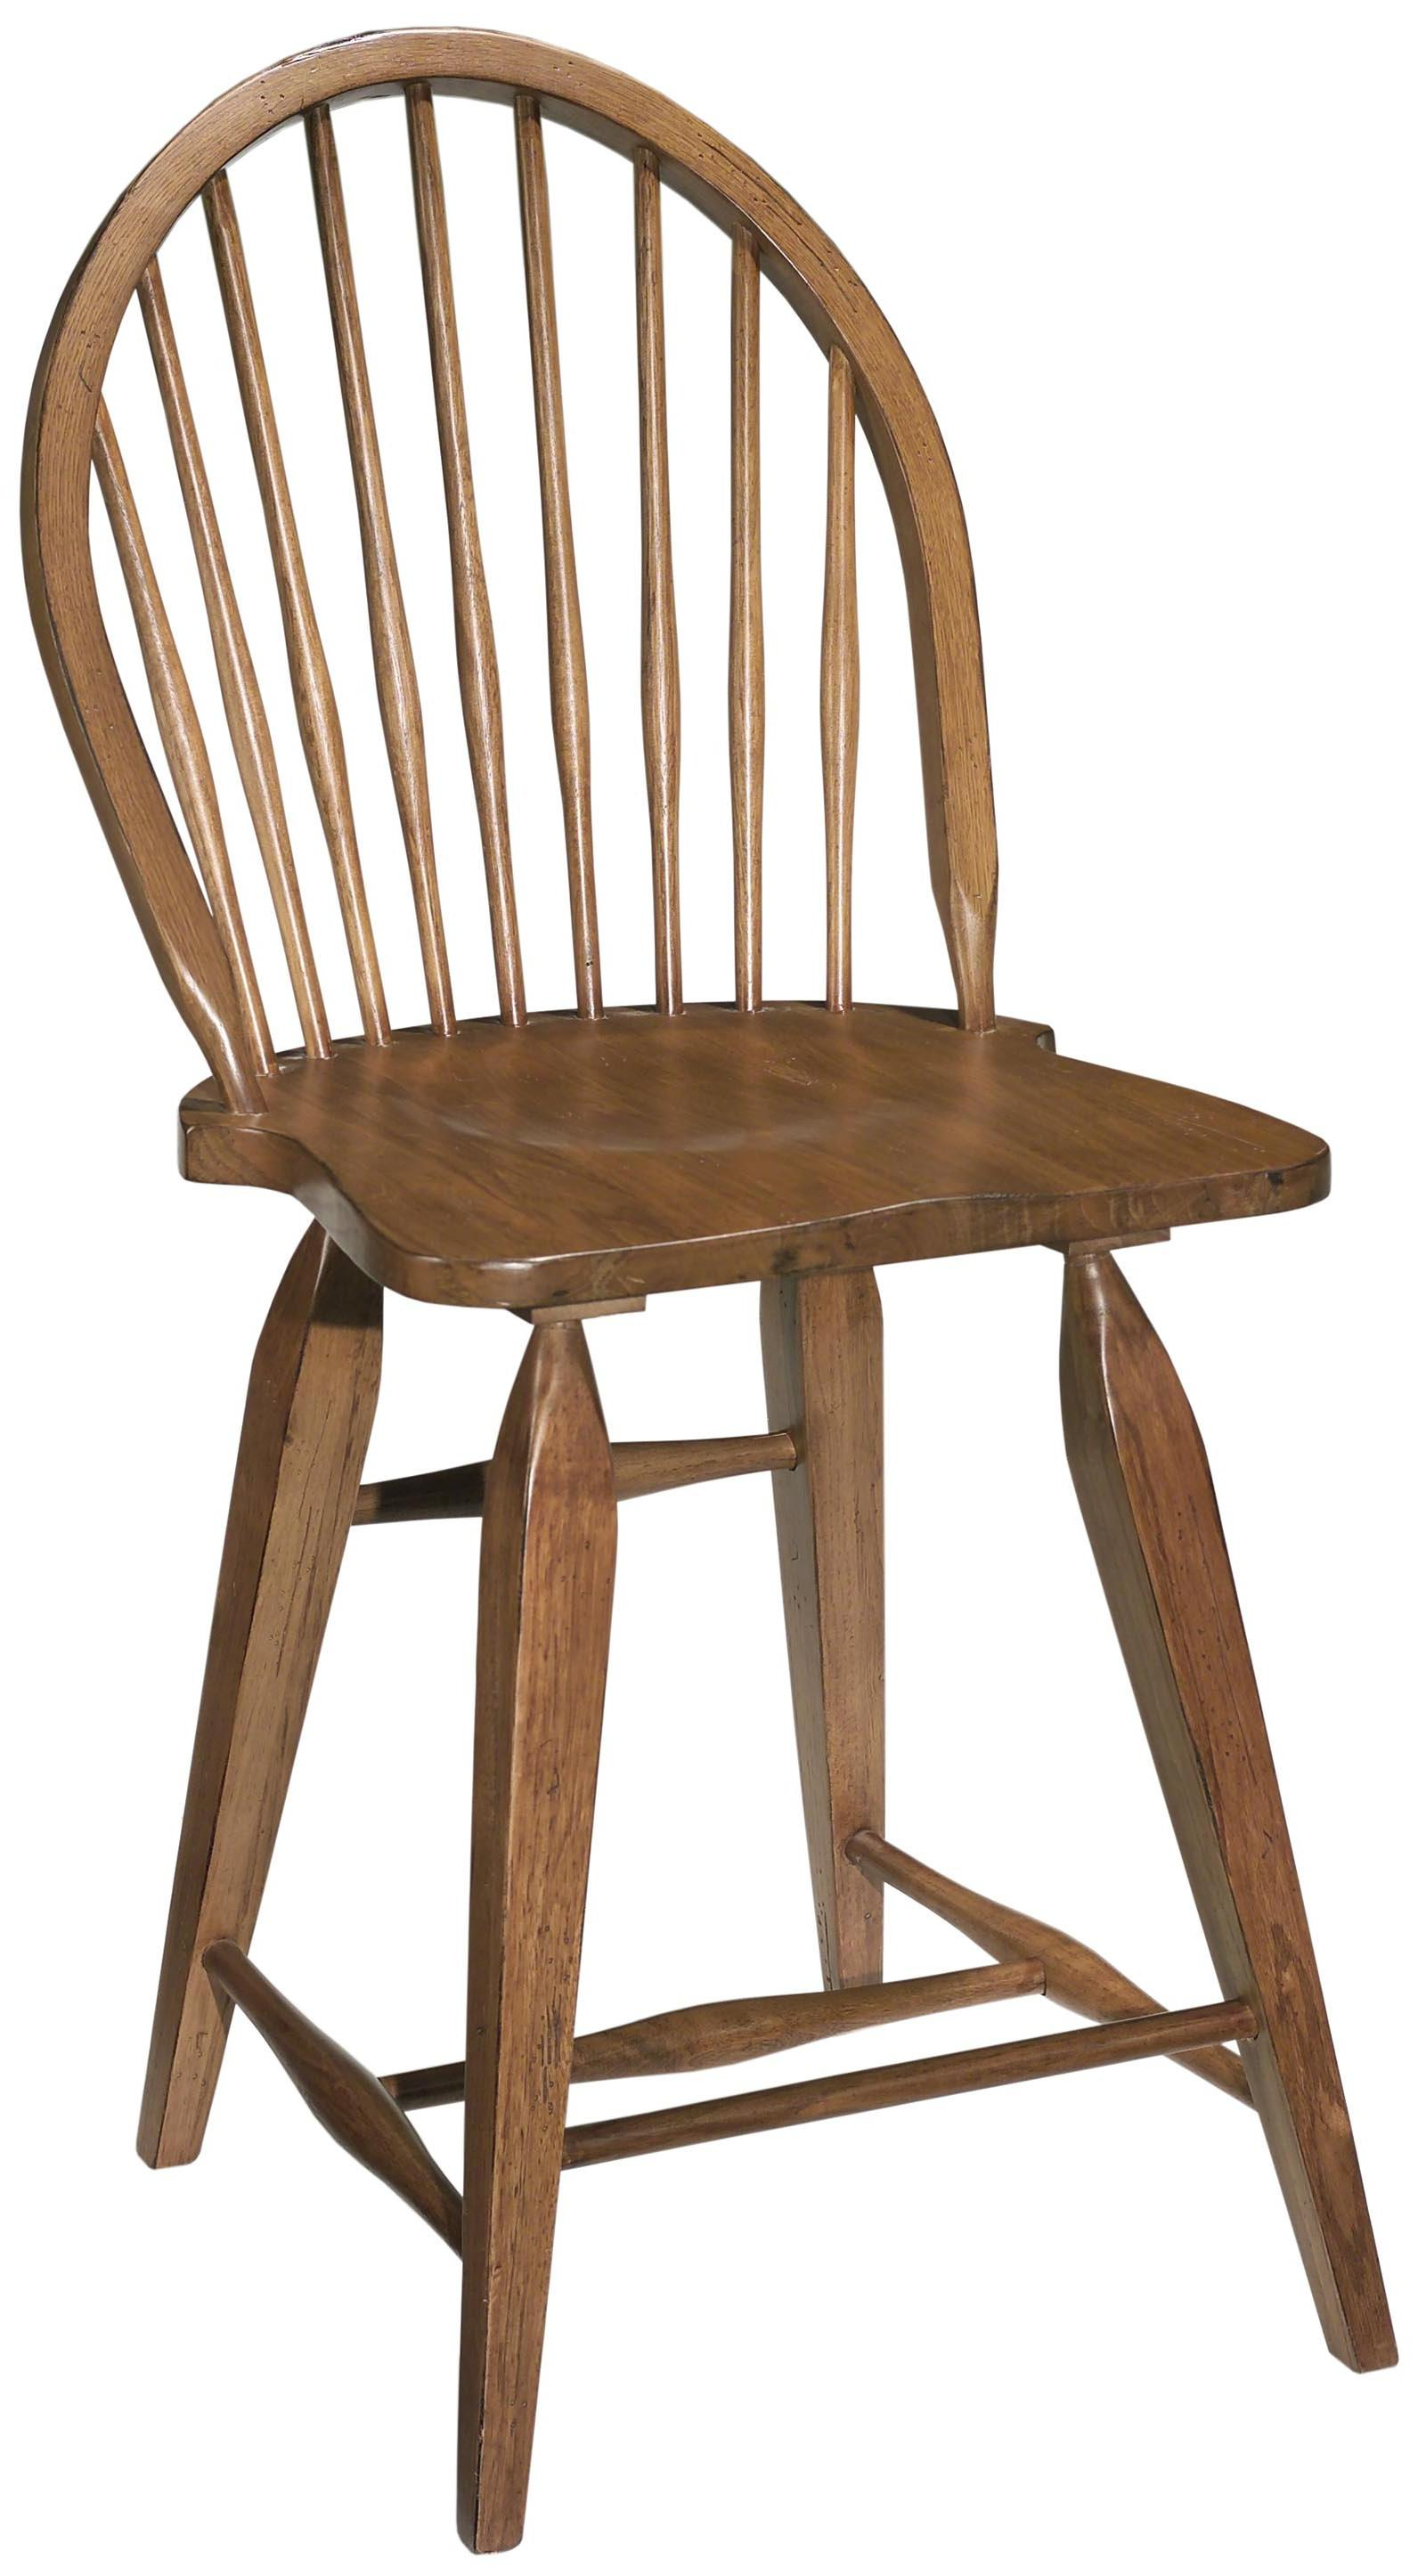 Broyhill Furniture Attic Heirlooms Windsor Counter Stool - Item Number: 5397-97S